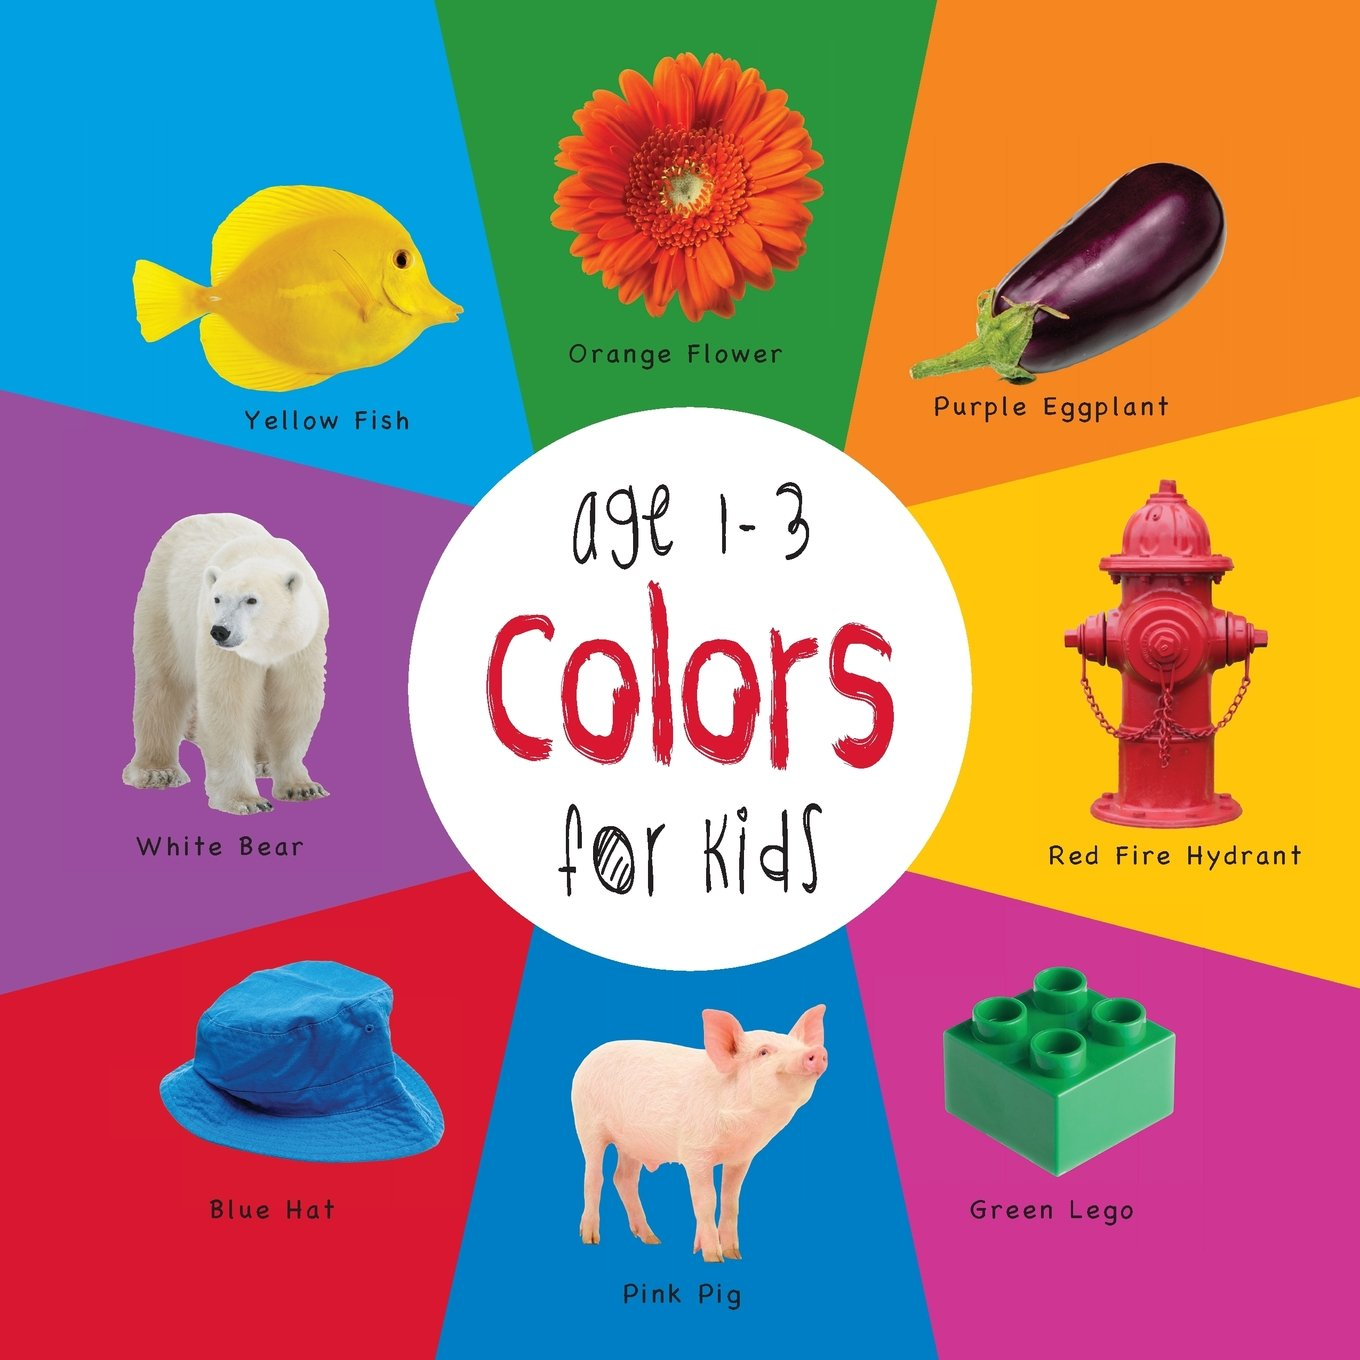 Download Colors for Kids age 1-3 (Engage Early Readers: Children's Learning Books) with FREE EBOOK pdf